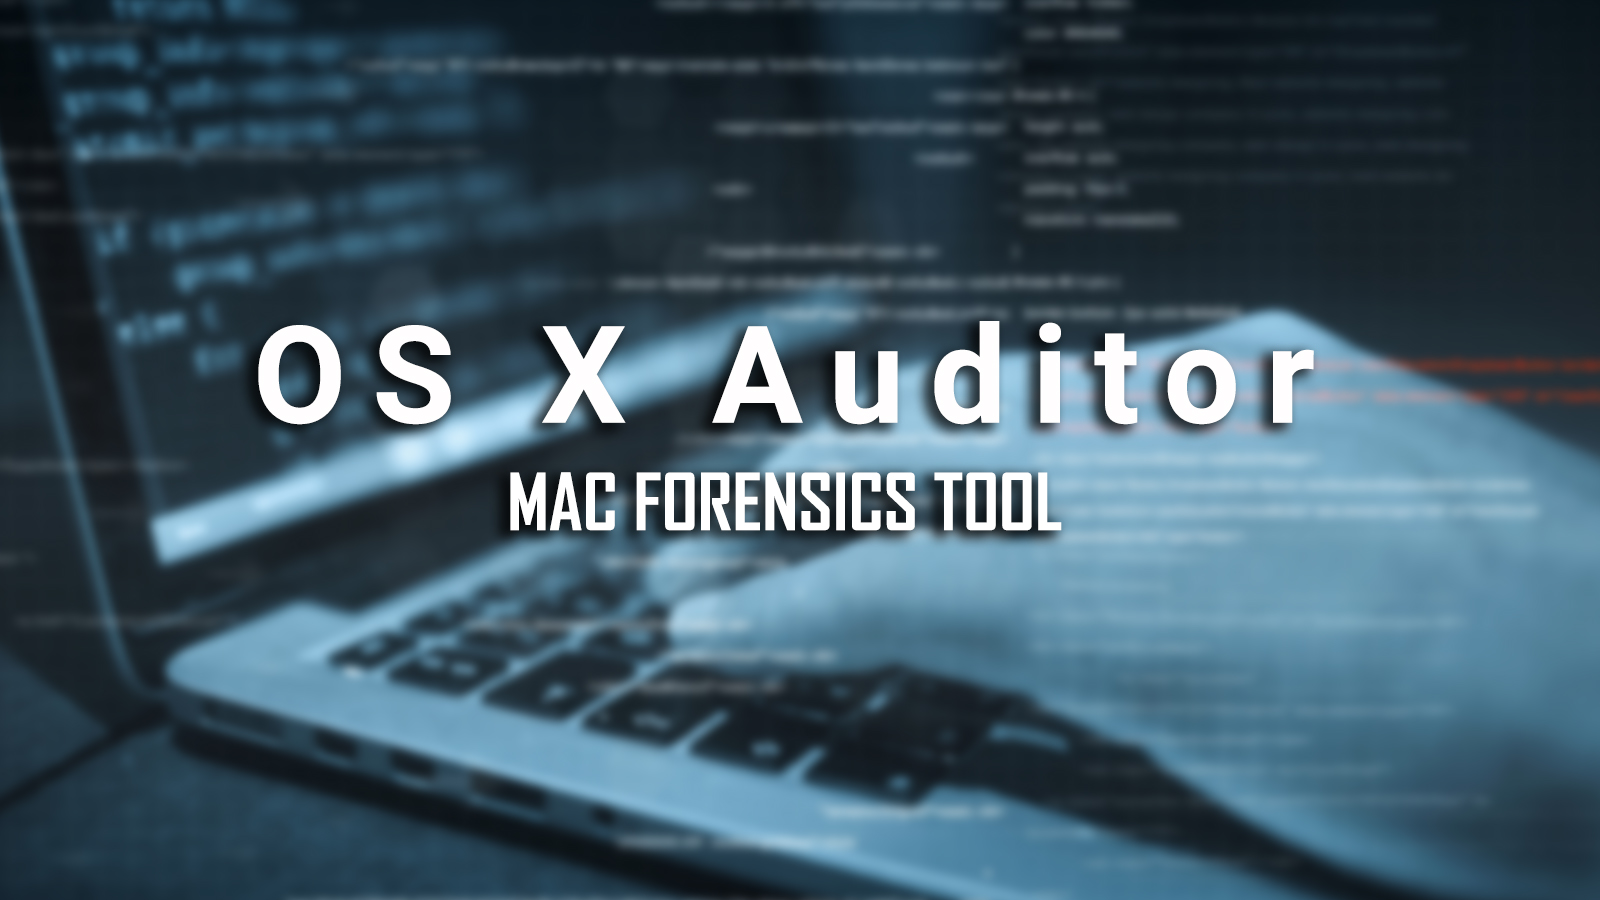 OS X Auditor Forensic Tool